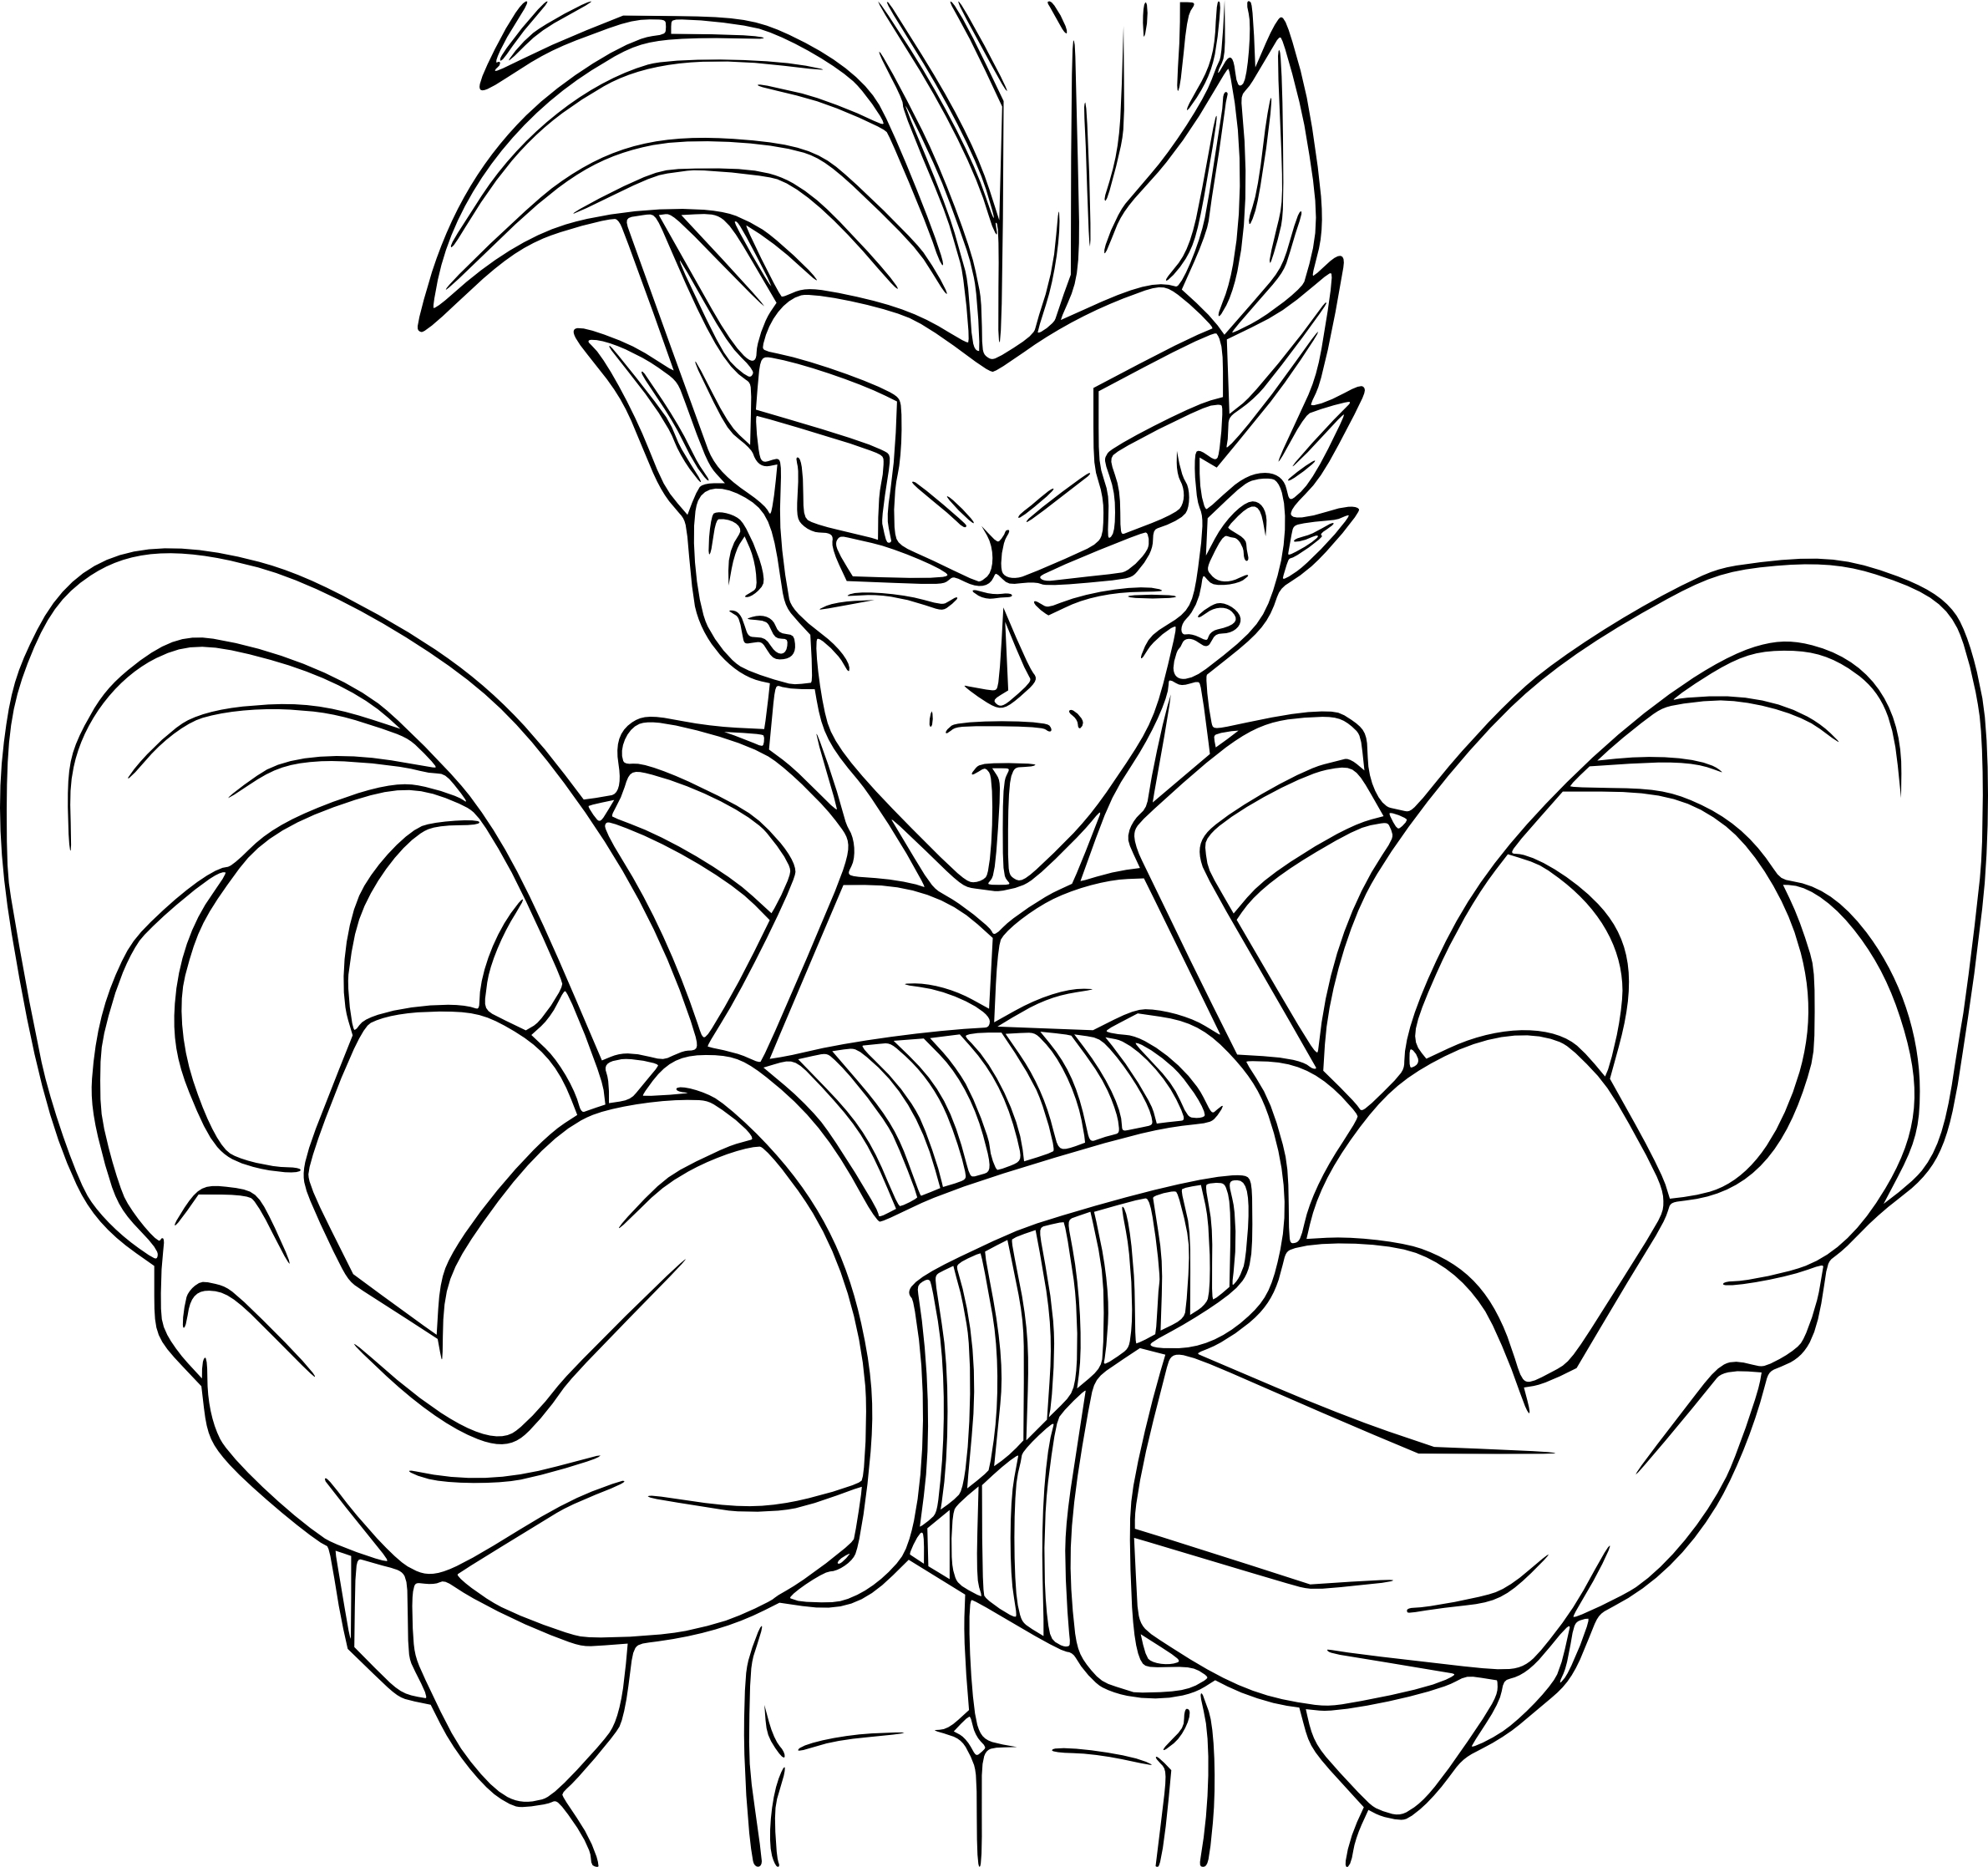 Coloriage baby vegeta db gt imprimer et colorier - Dessin de dragon ball super ...